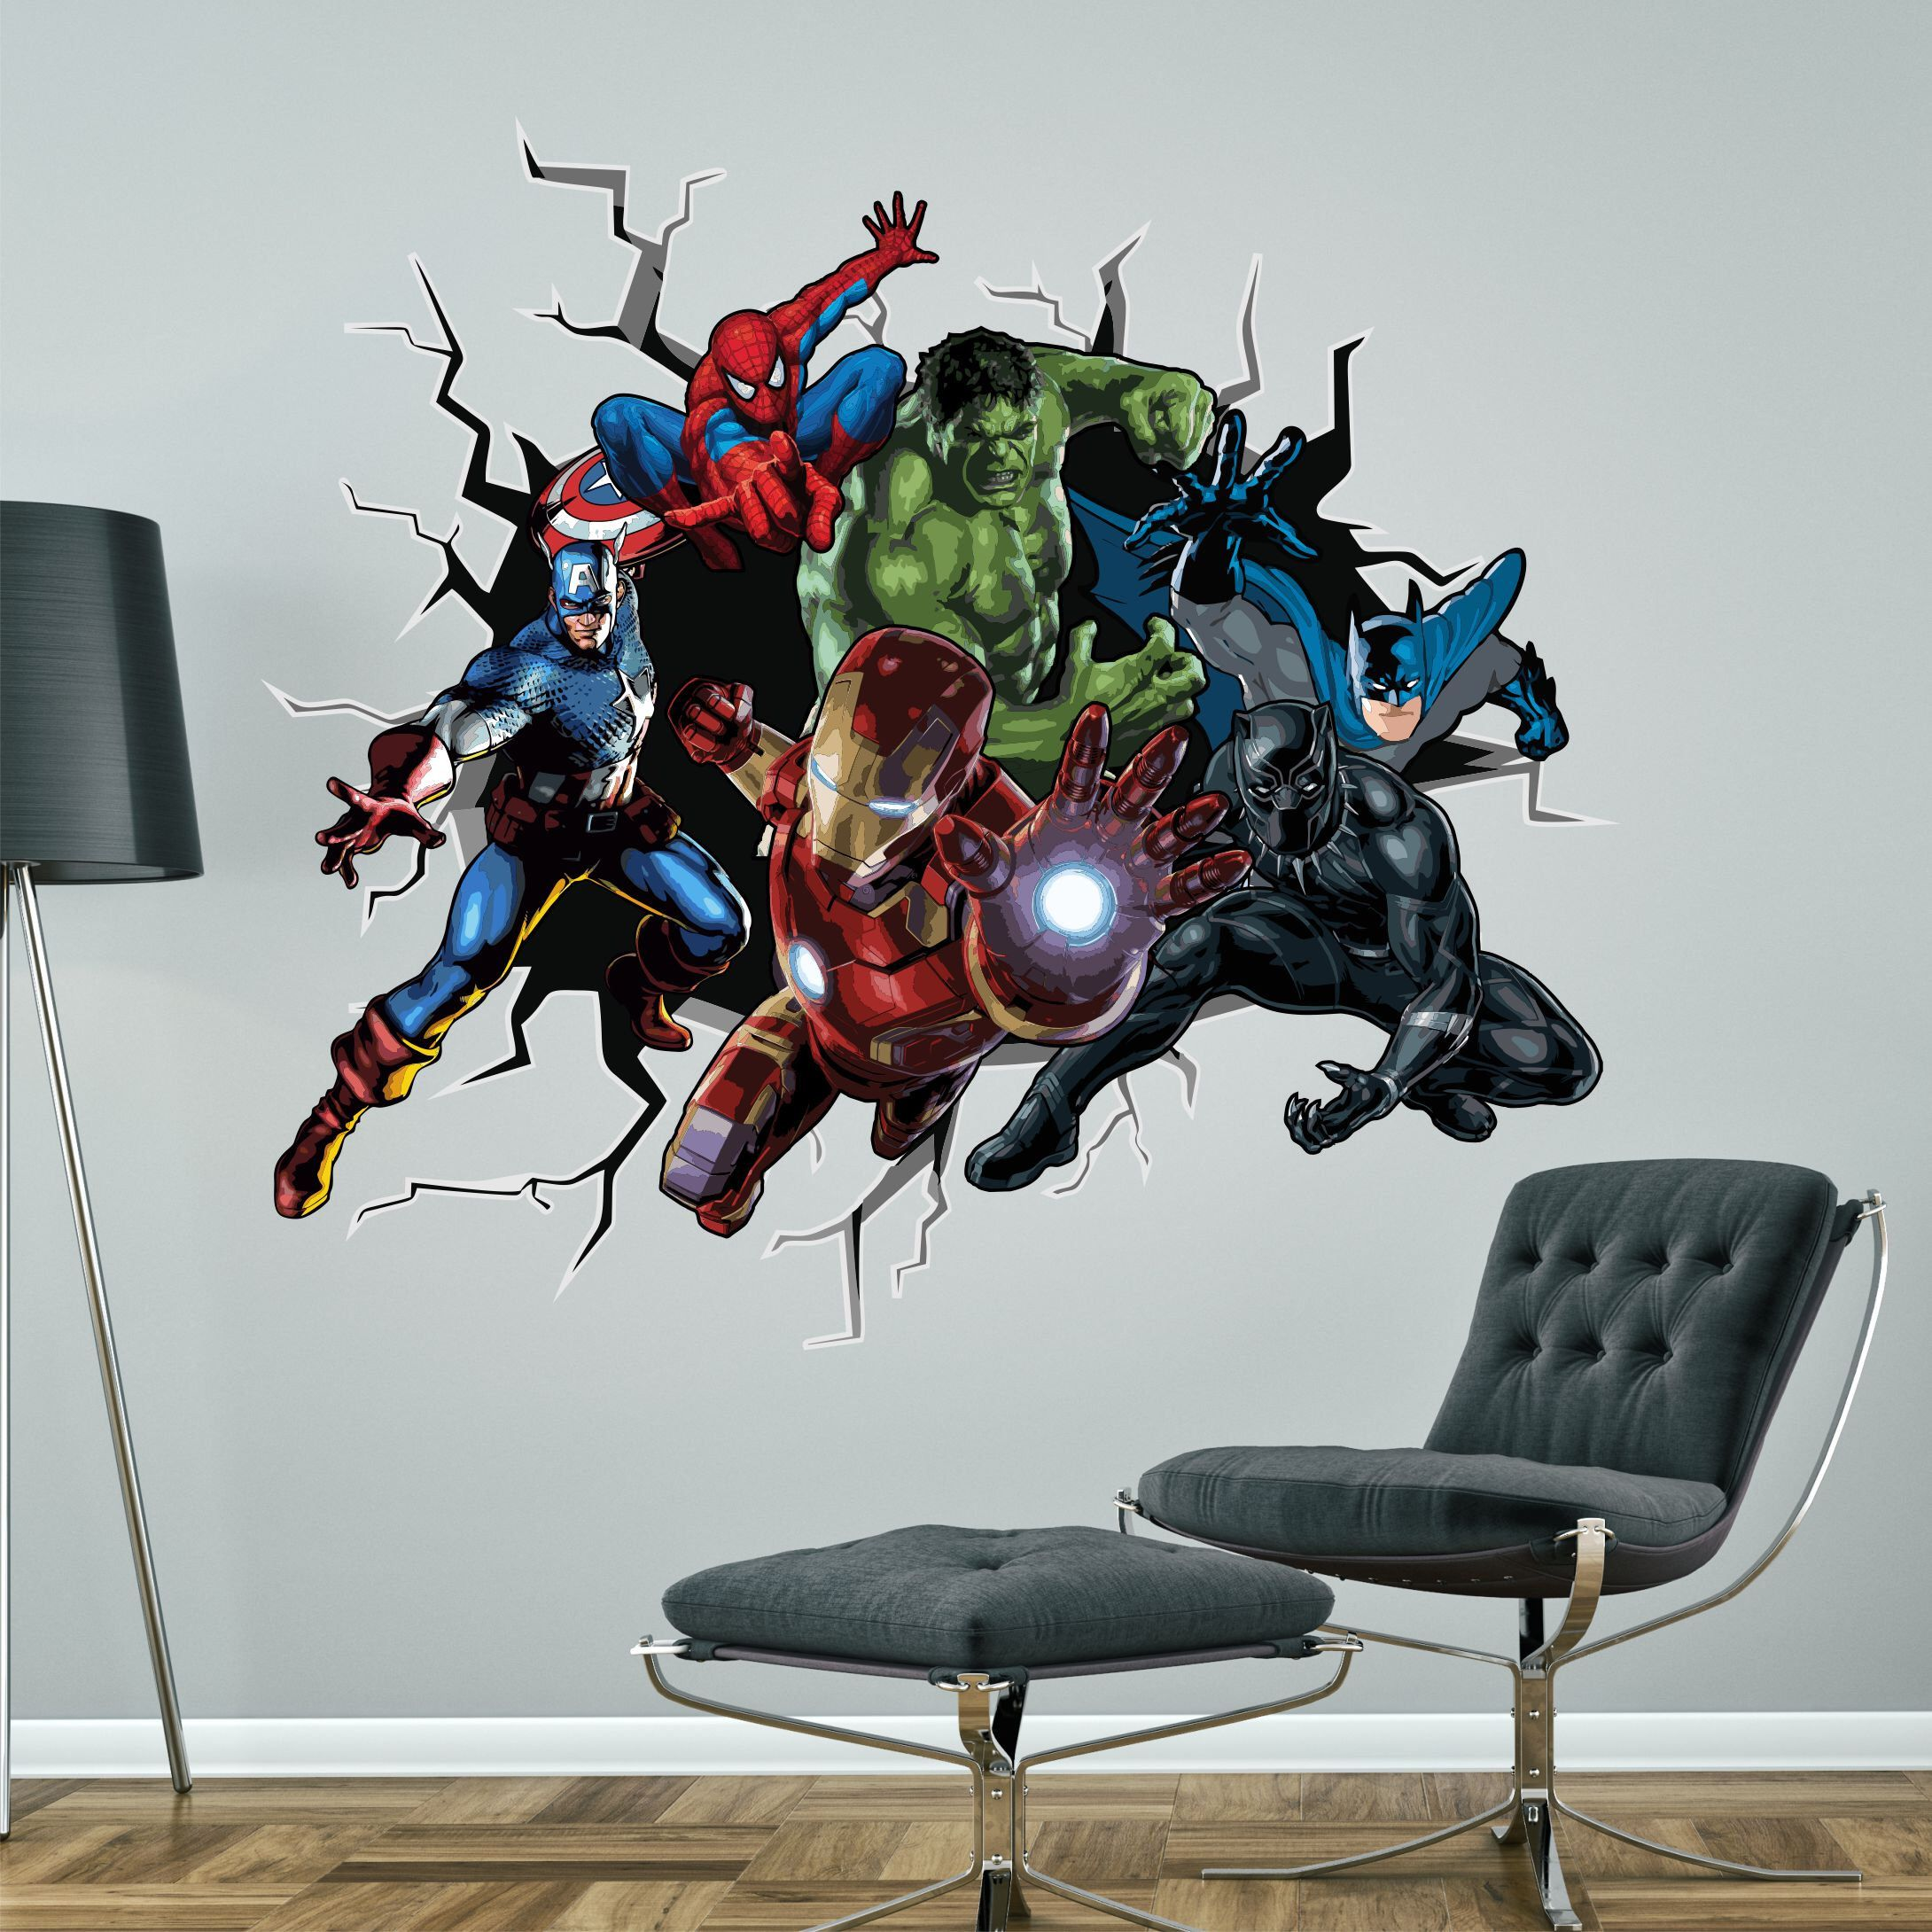 Superheroes Breaking Smashing Through Wall Sticker Boys Etsy In 2020 Superhero Wall Superhero Wall Decals Superhero Wall Stickers